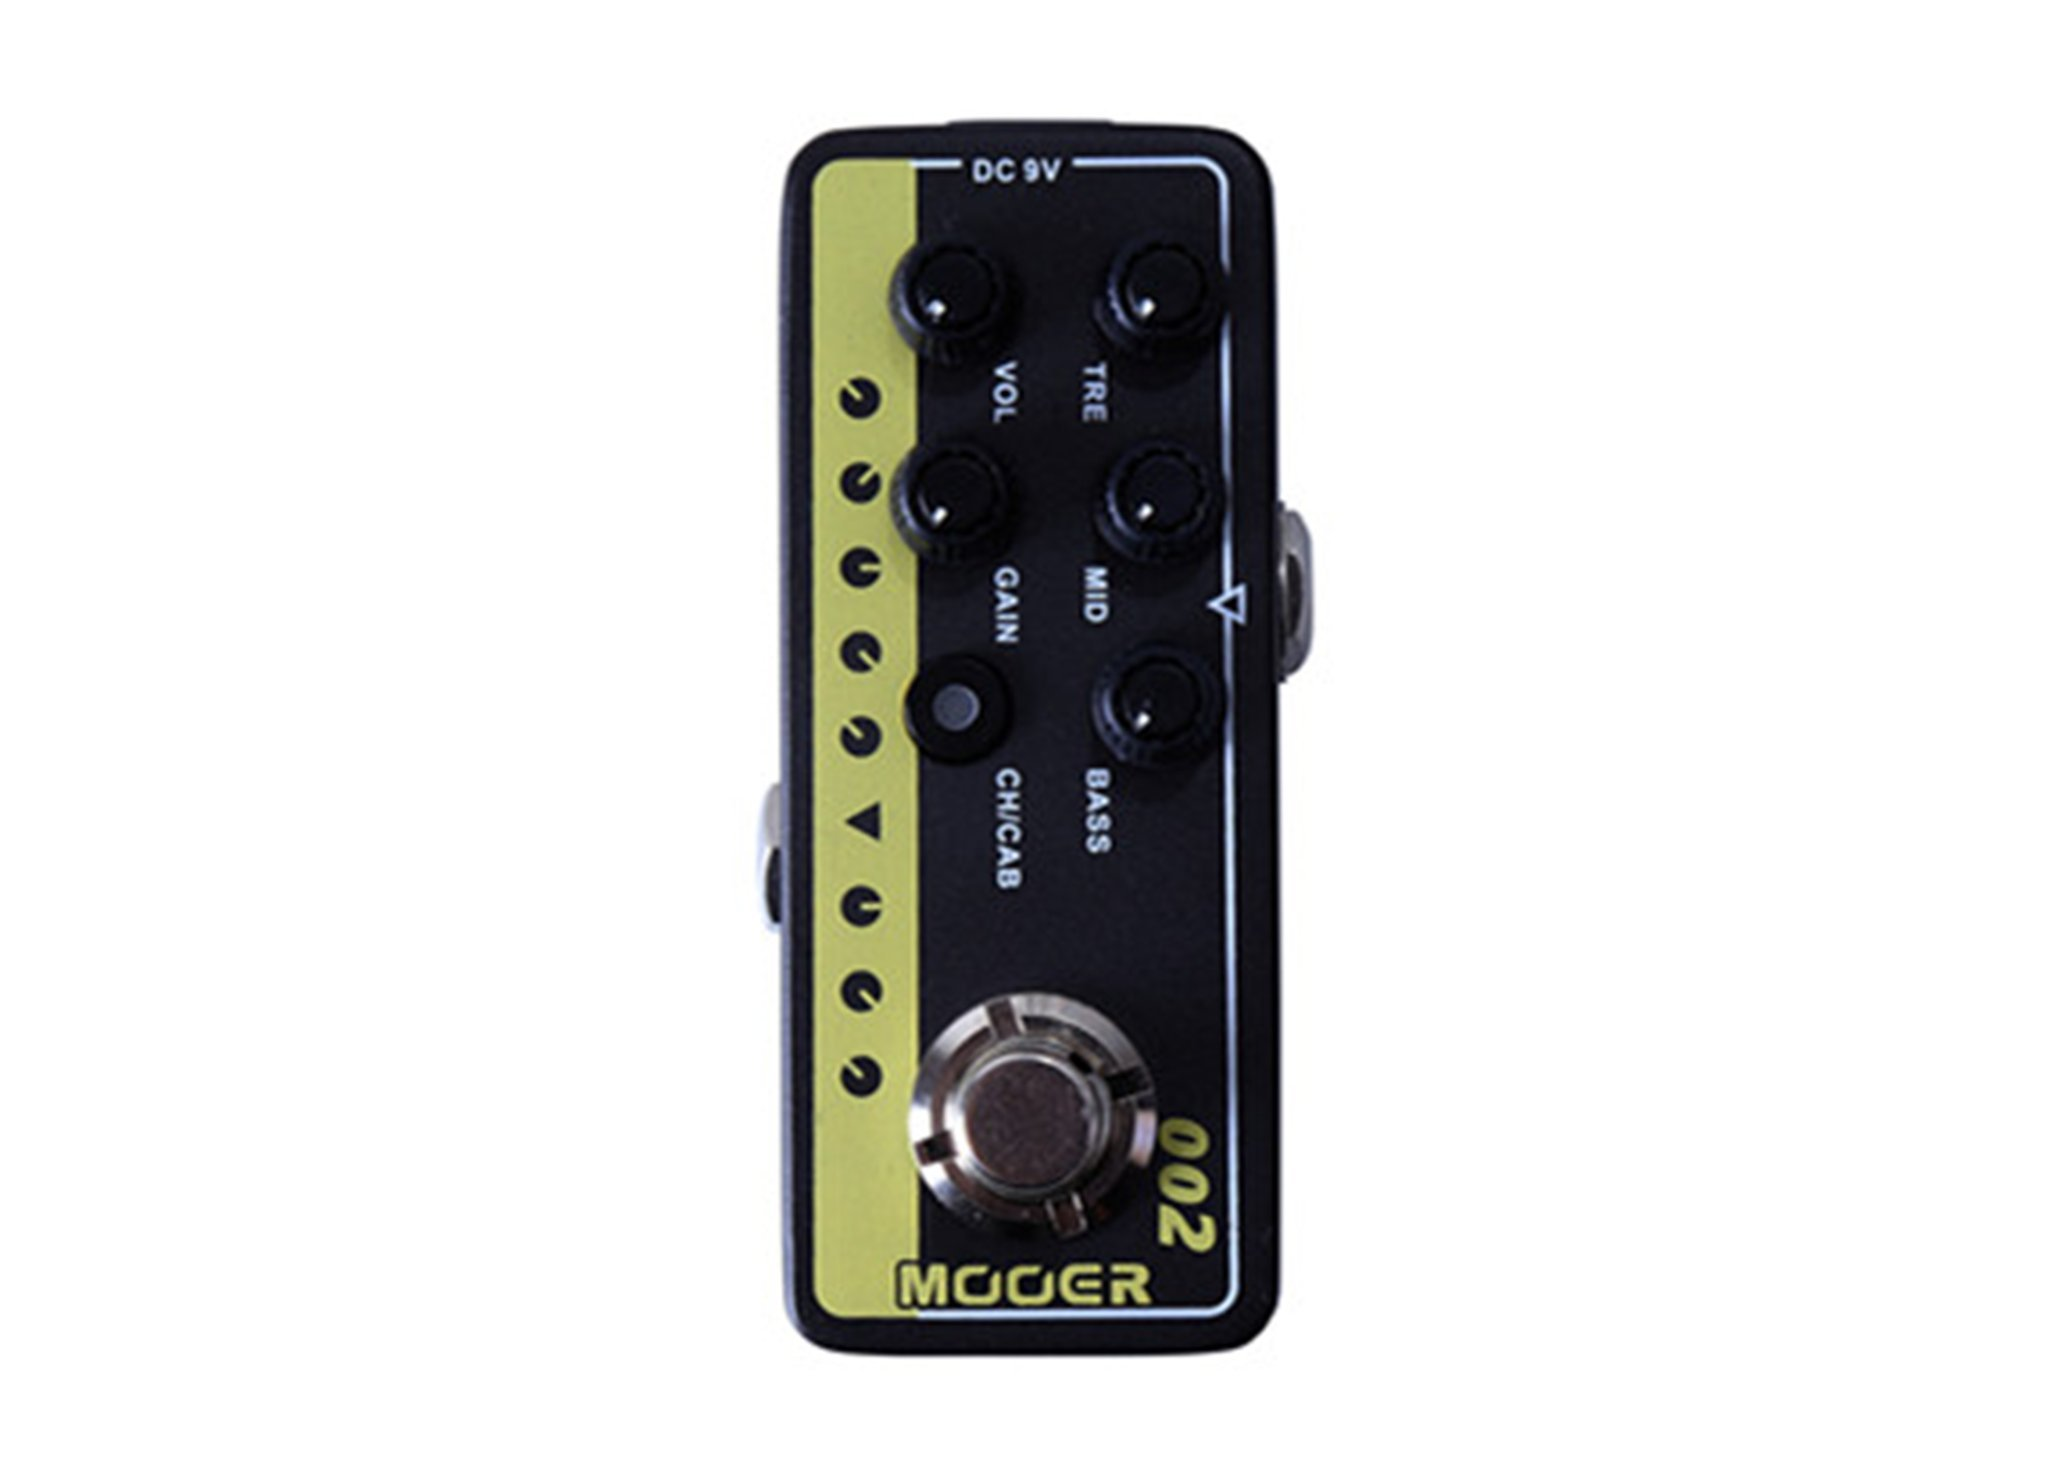 Mooer Micro Preamp 002 UK Gold 900 w/Bonus RIS Pick (x1) 6943206792116